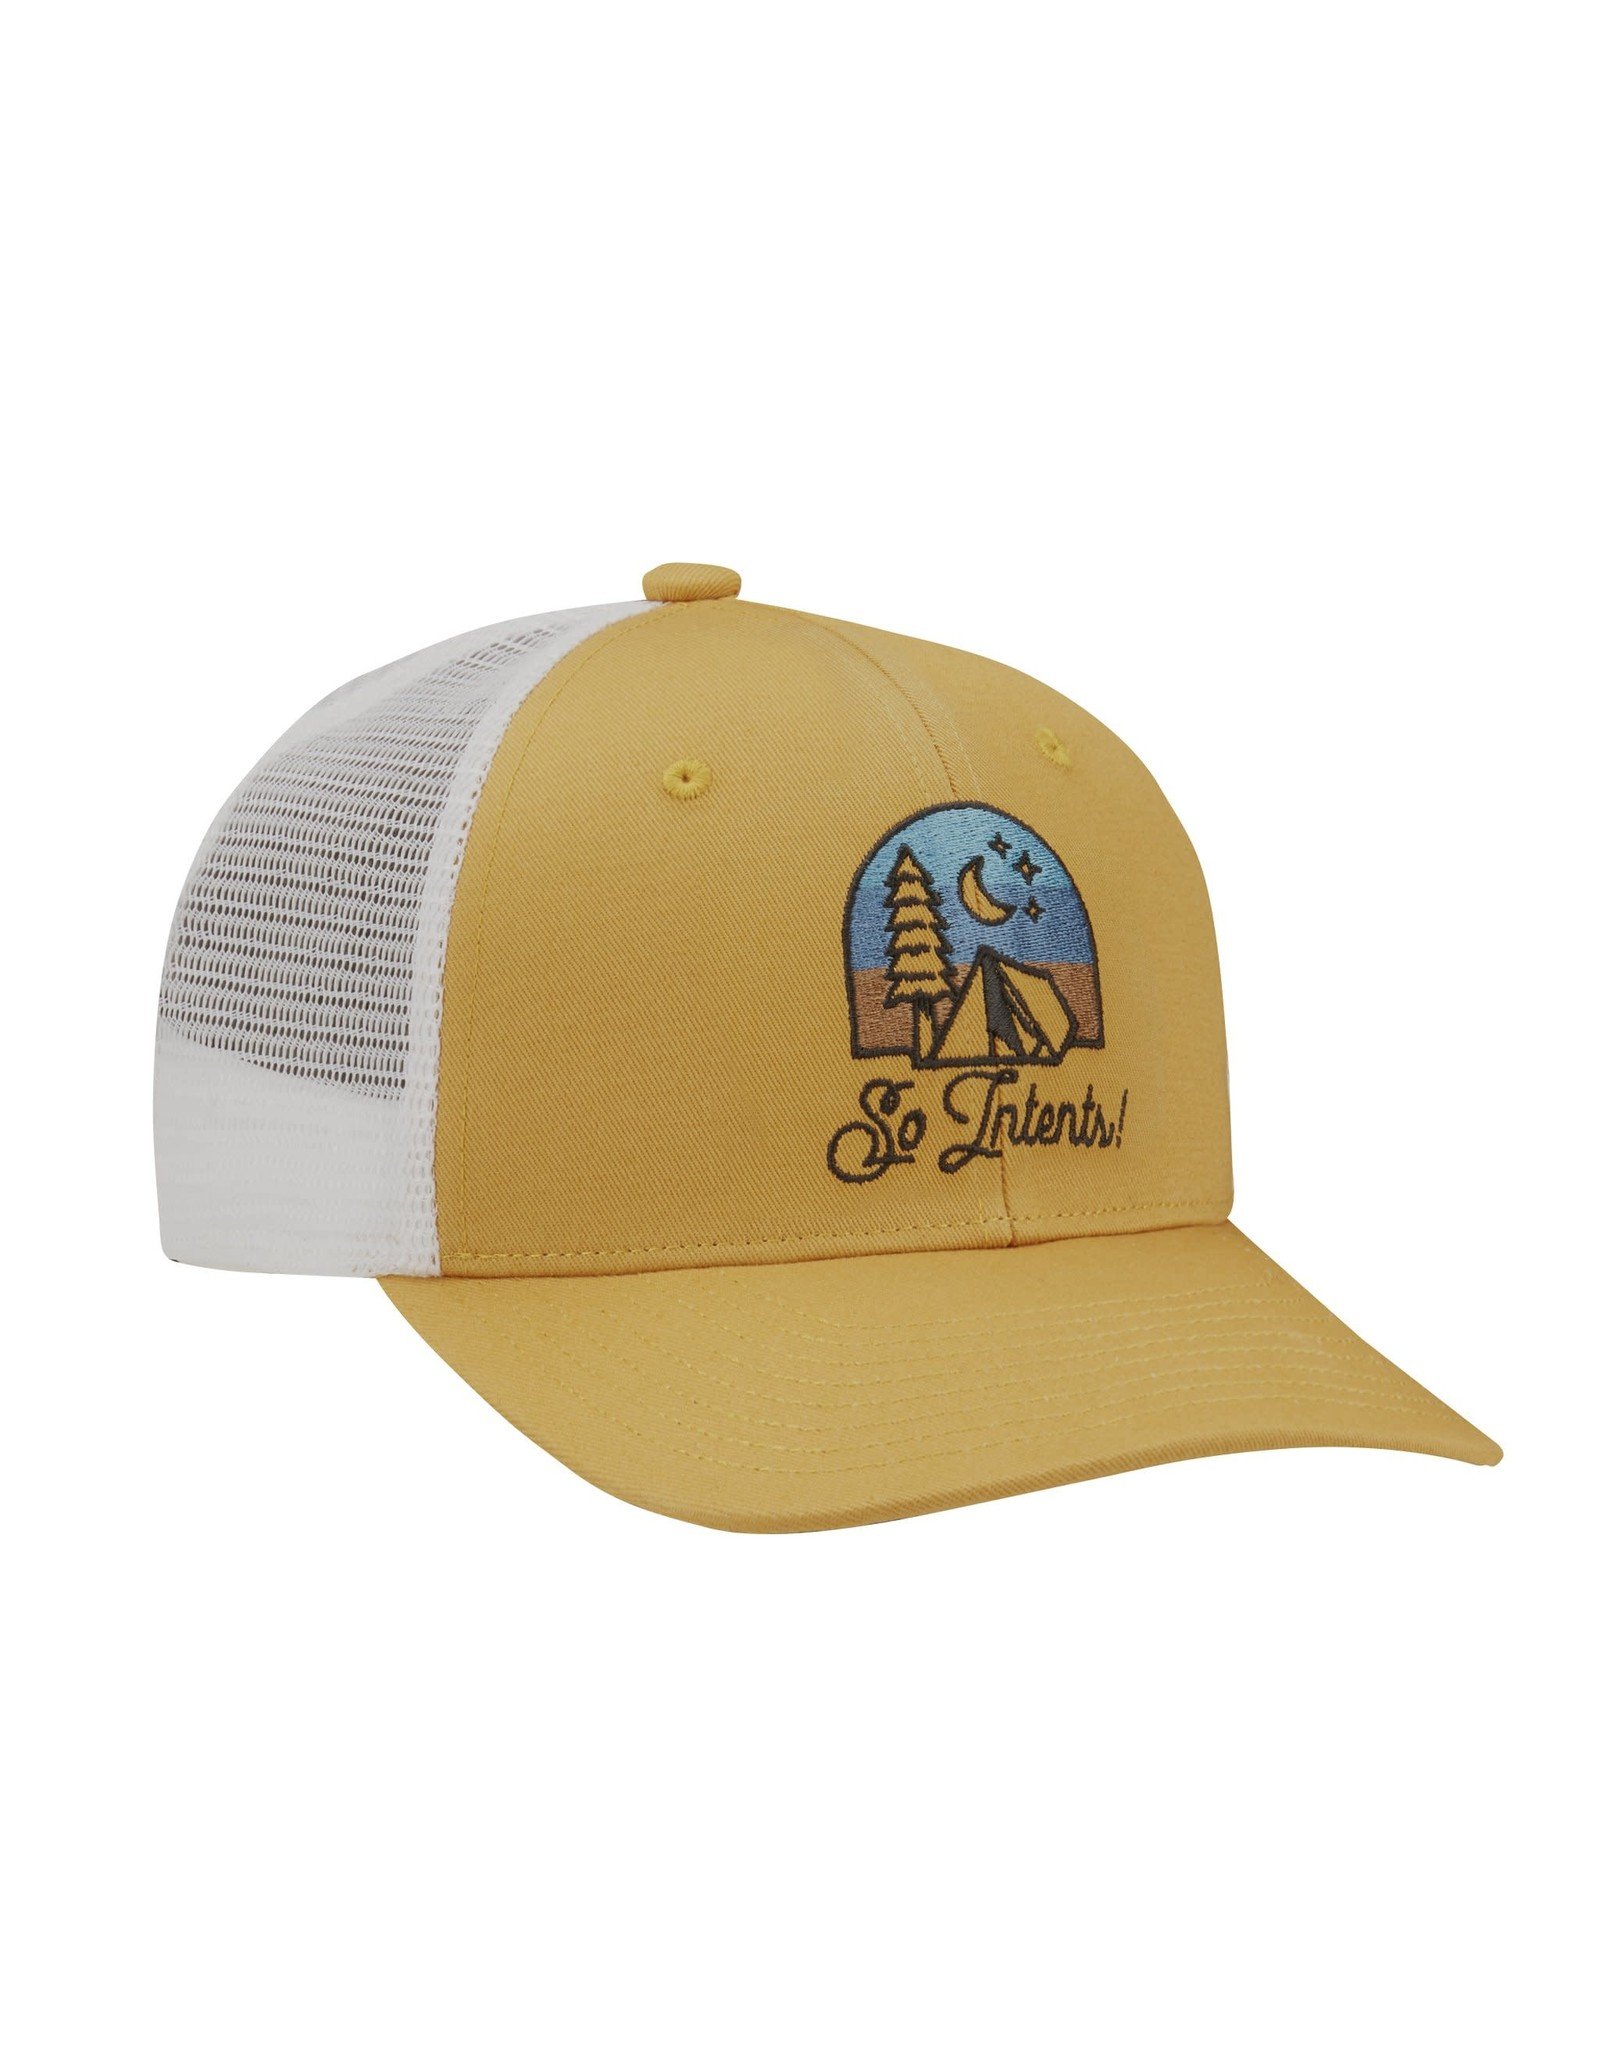 coal Coal - casquette homme tall tales mustard